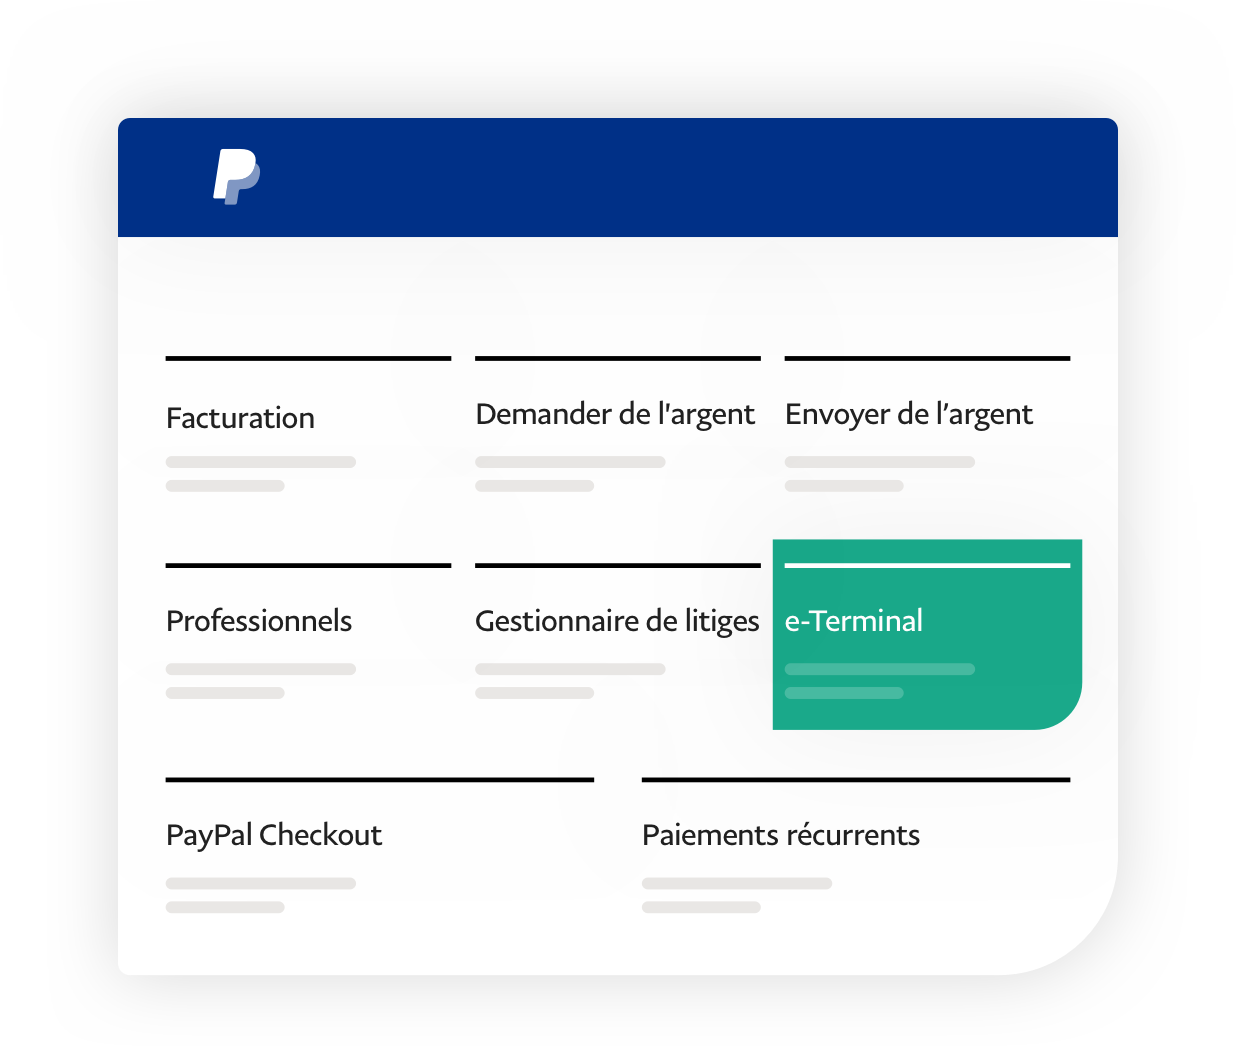 Capture d'écran d'application montrant les applications disponibles, avec l'e-Terminal ressortant sur fond vert.